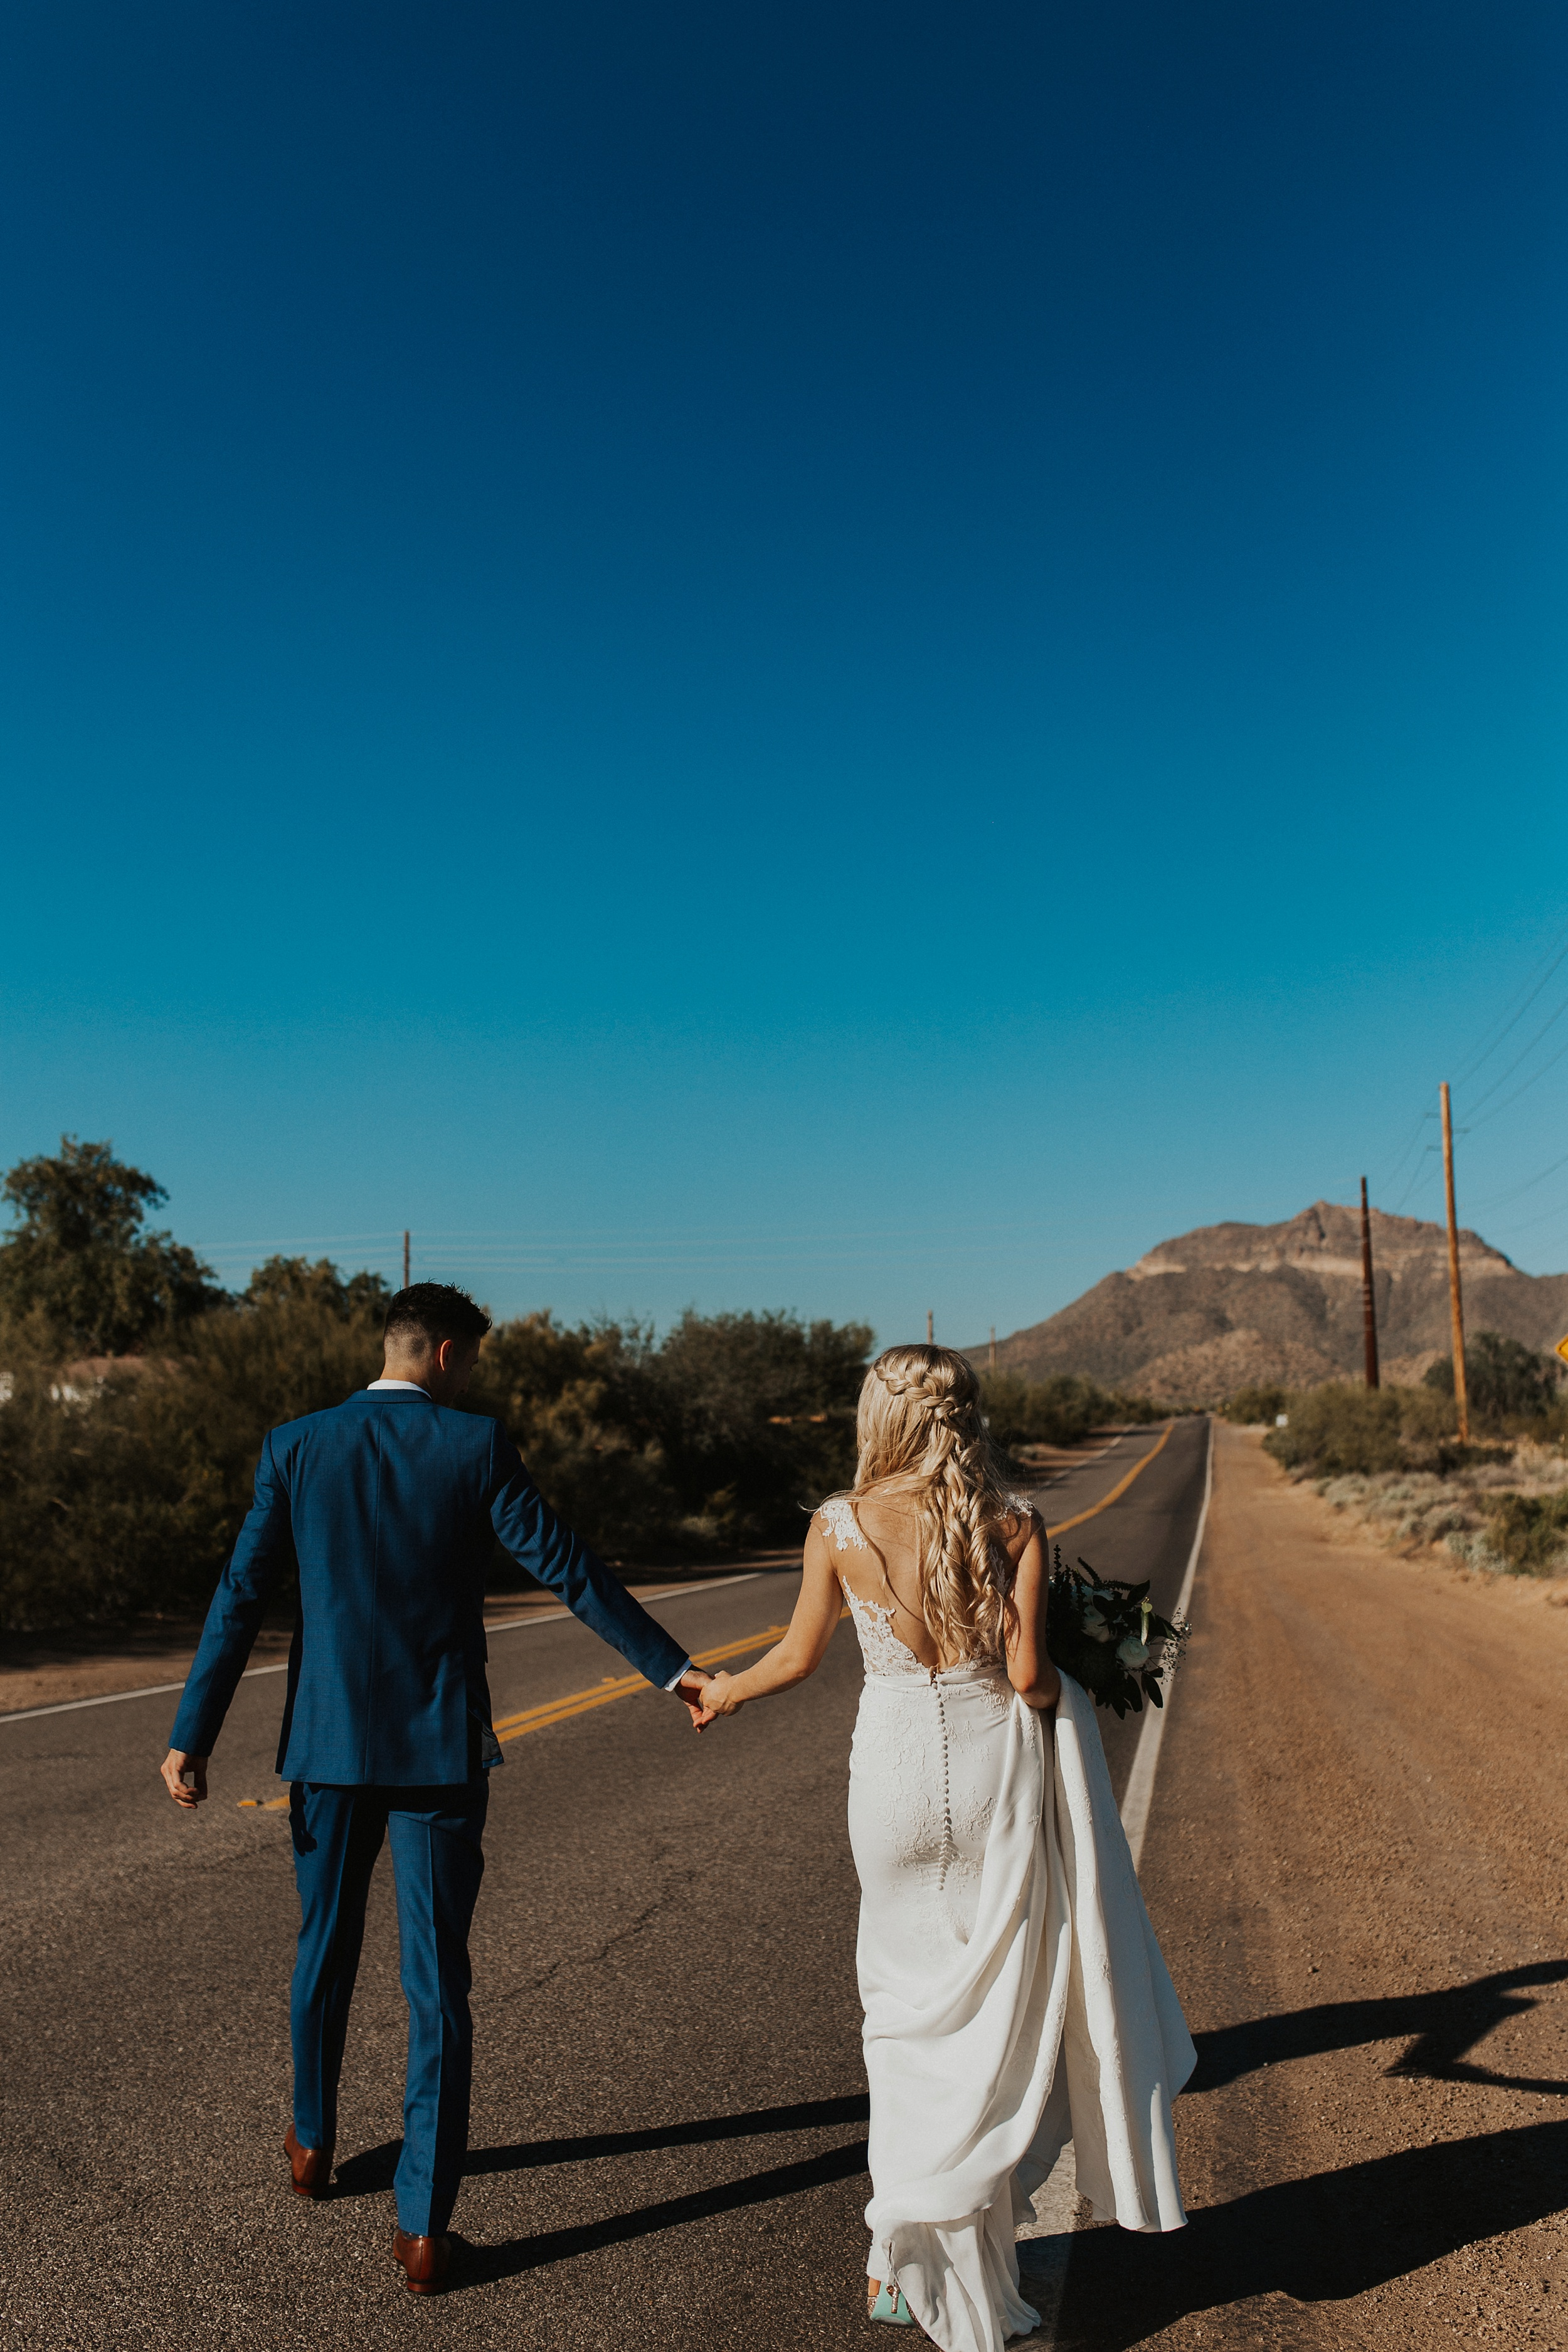 Meg+Bubba_Wedding_Bride+Groom_Portraits_Arizona-4.jpg